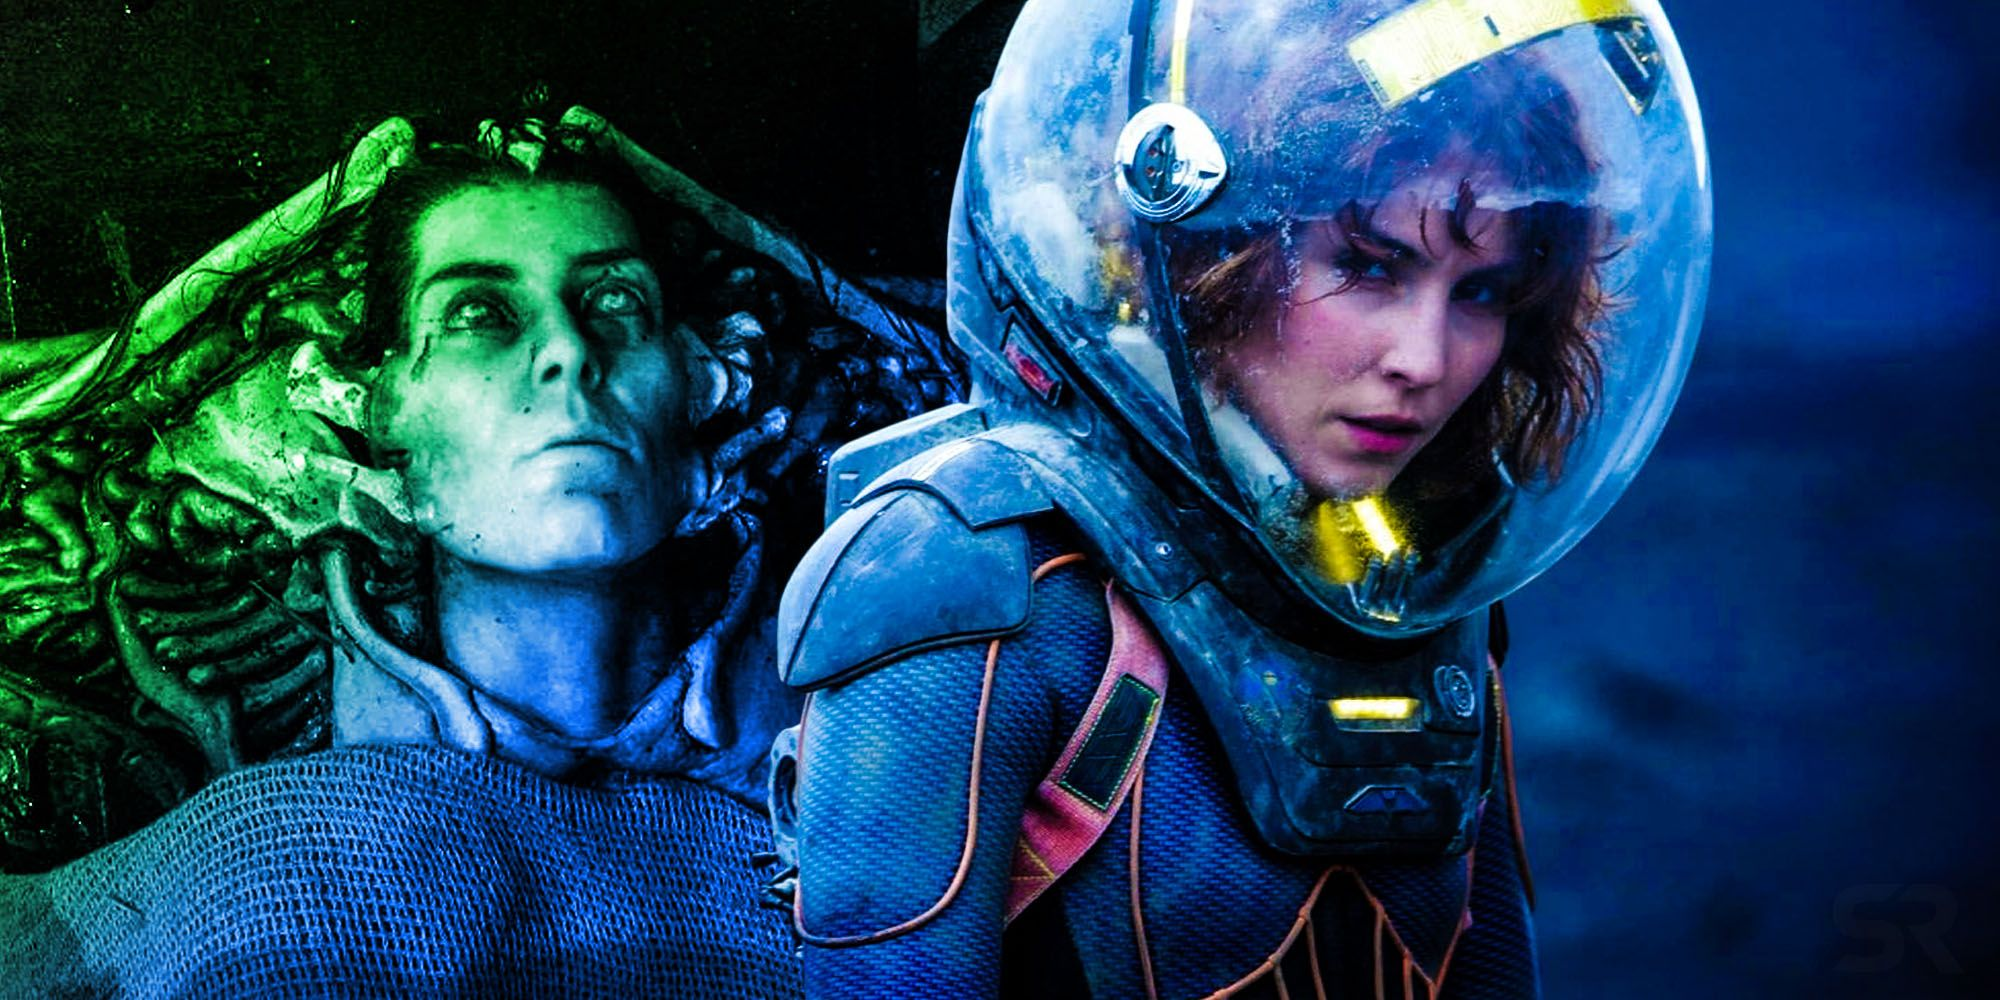 Alien: Ridley Scott's Original Fate For Prometheus' Shaw Was Horrific